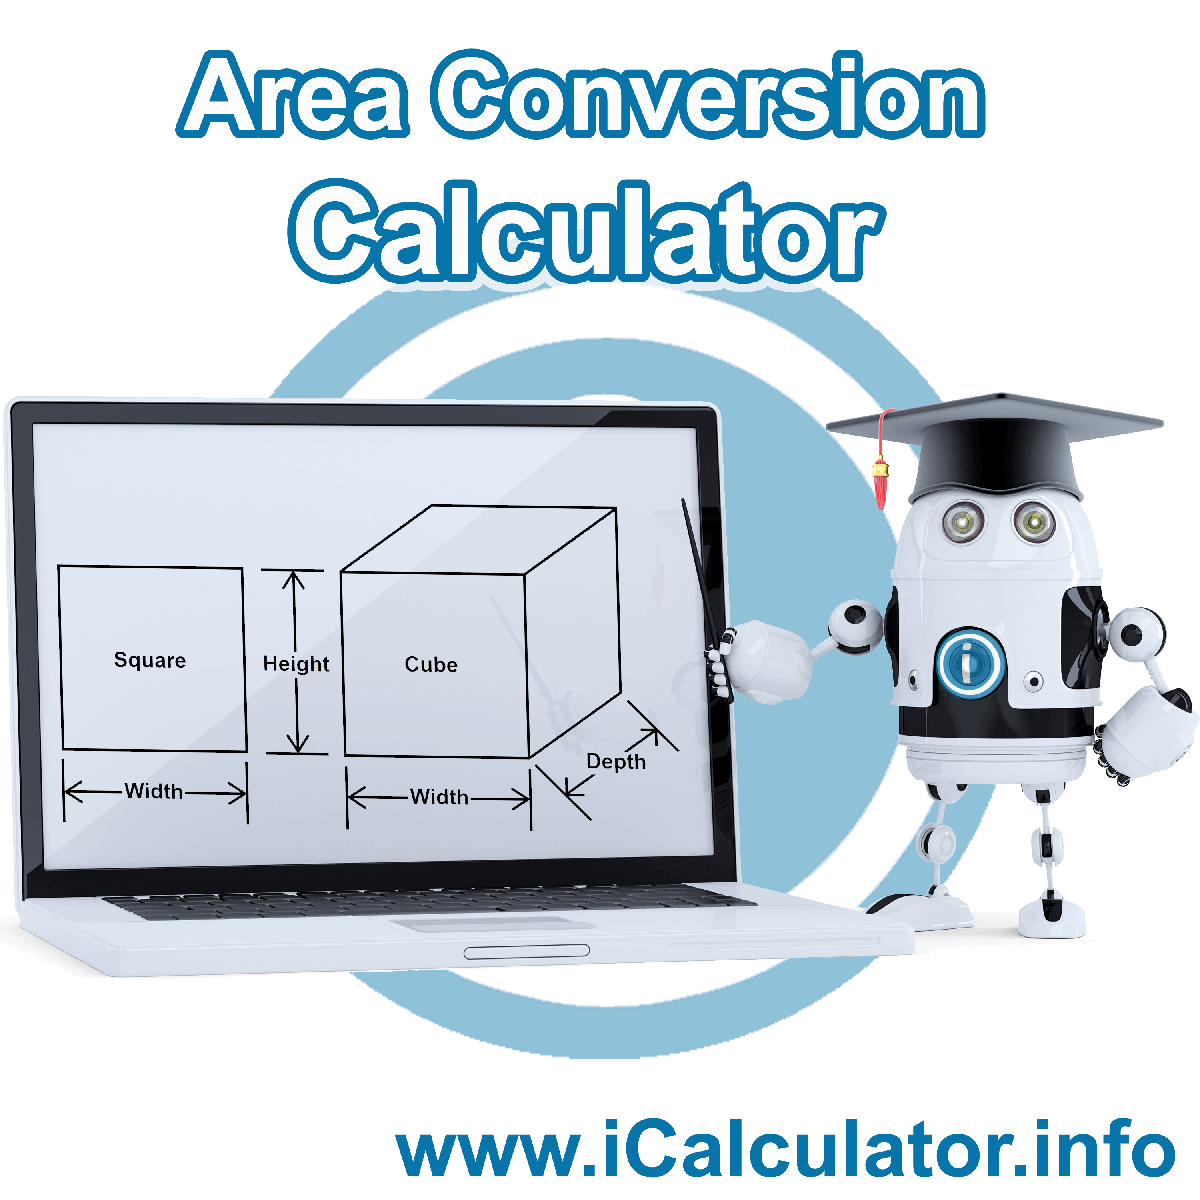 Area Conversion Calculator. This image shows Area Conversion with associated calculations used by the Area conversion calculator